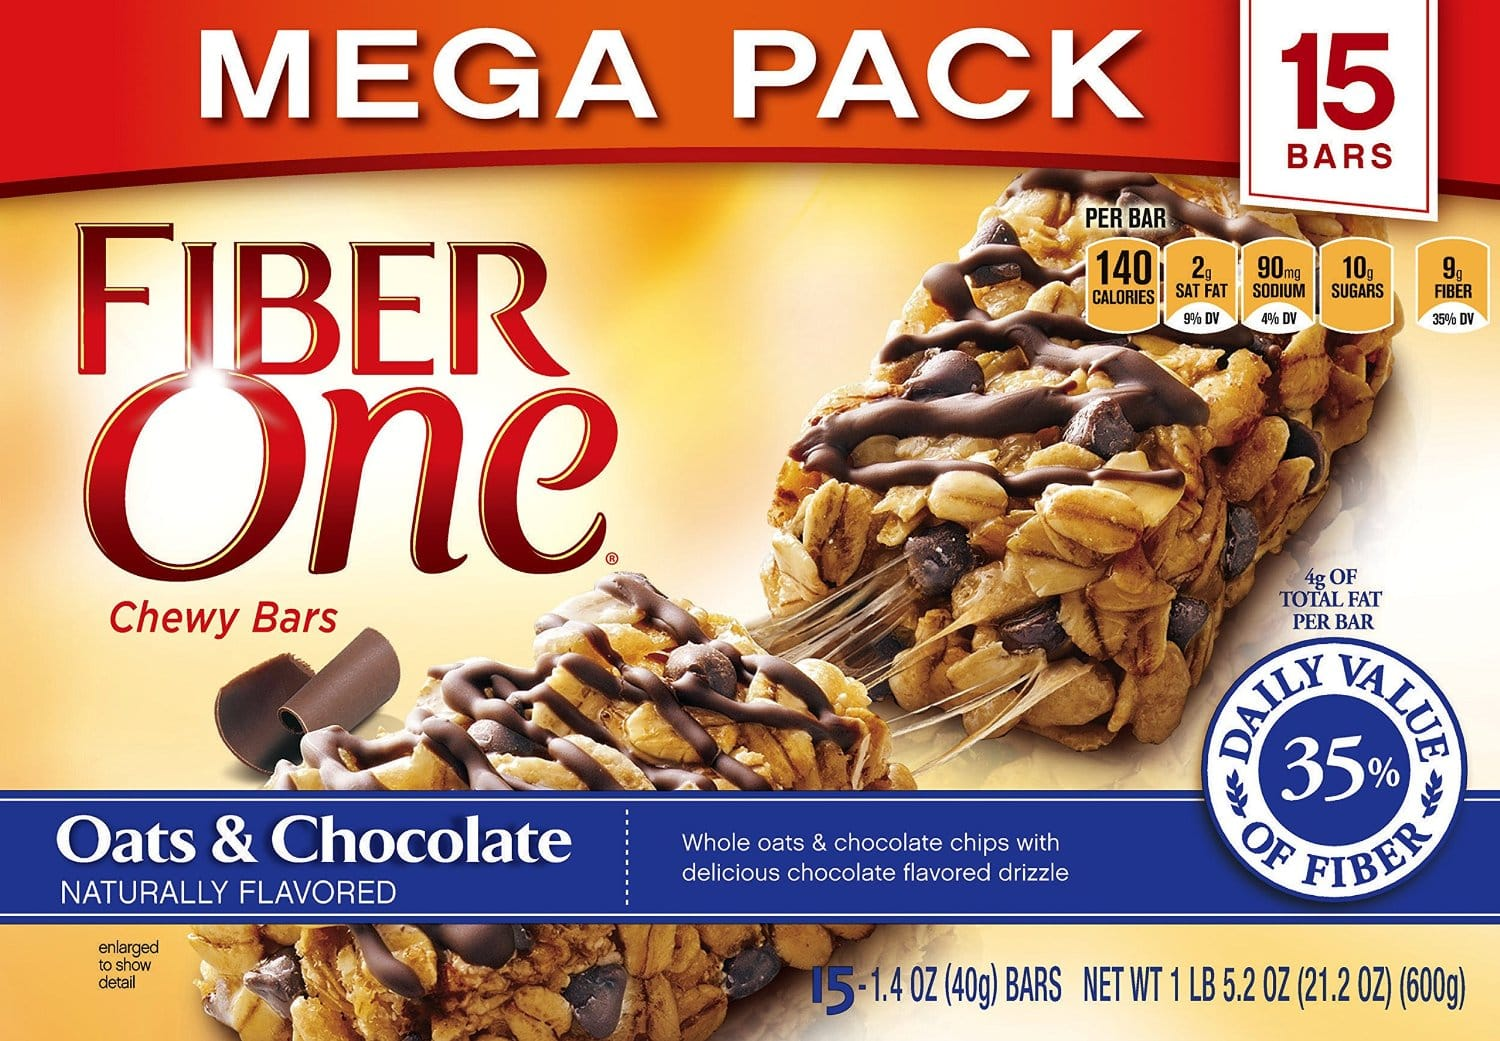 Fiber One Chewy Bars Oats and Chocolate, 30 Bars, (2x 15-Bar Mega Packs), 21.2 oz. (Pack of 2): $8.79 after coupon and S&S